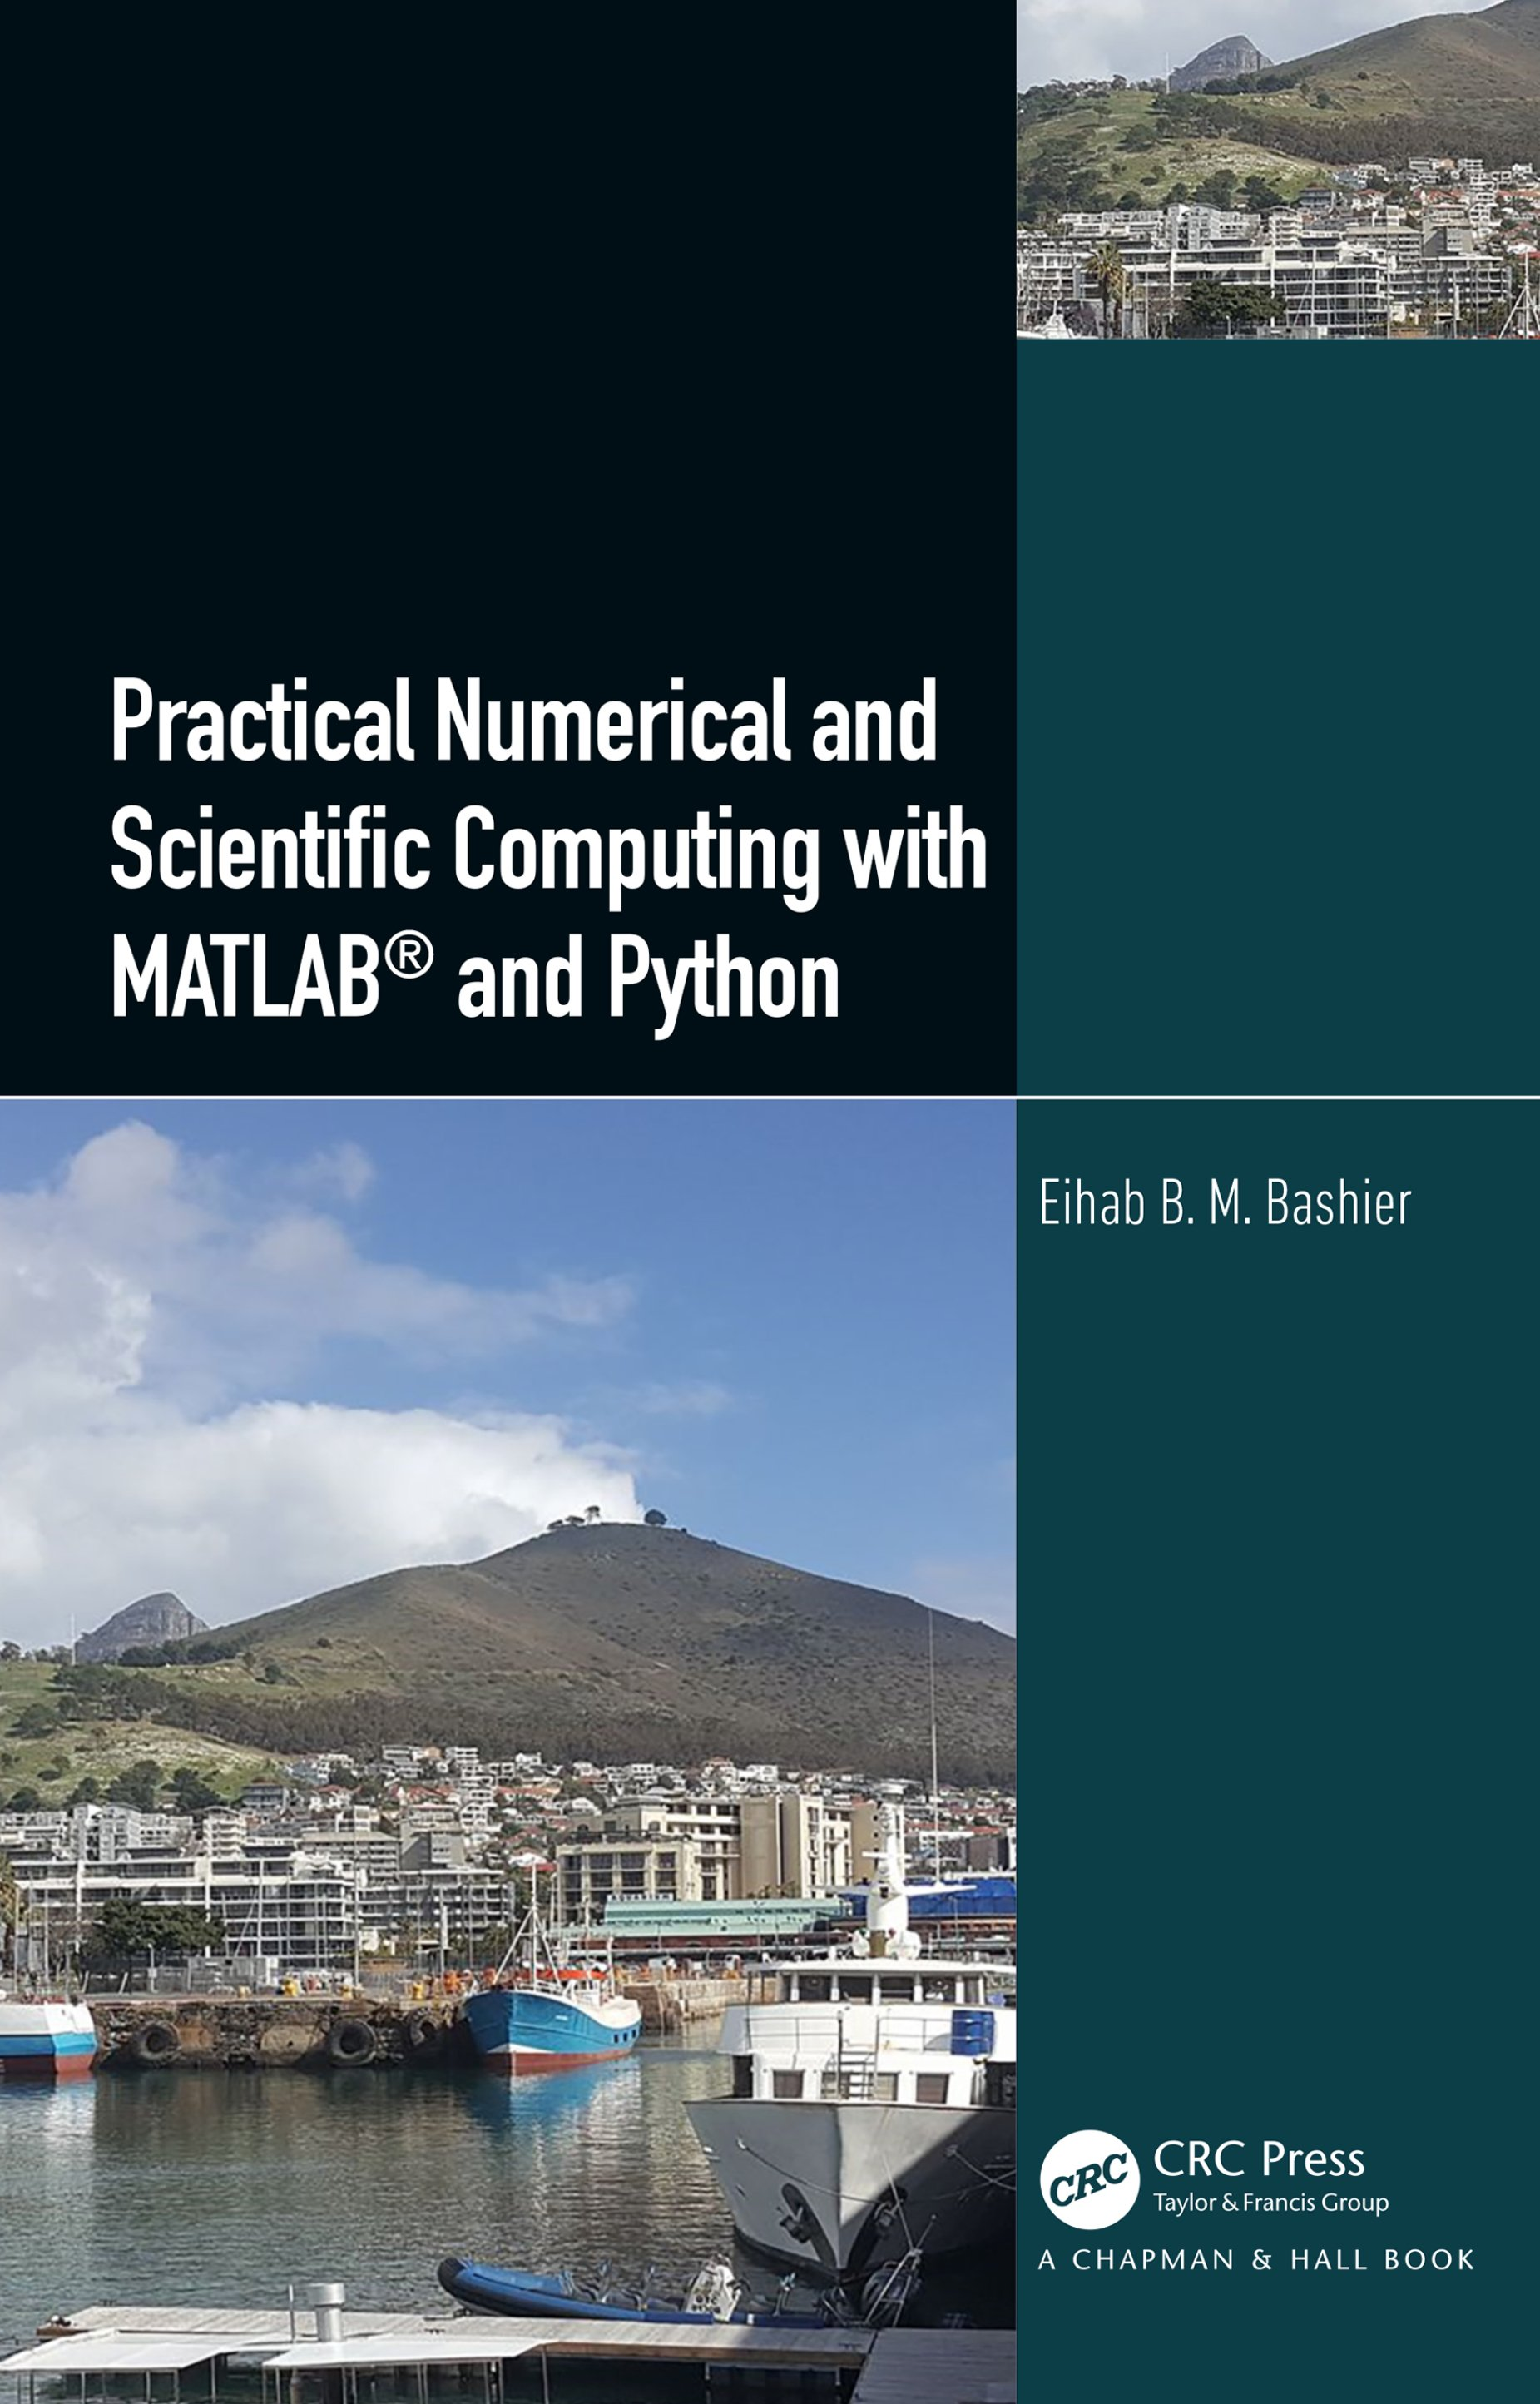 Practical Numerical and Scientific Computing with MATLAB® and Python